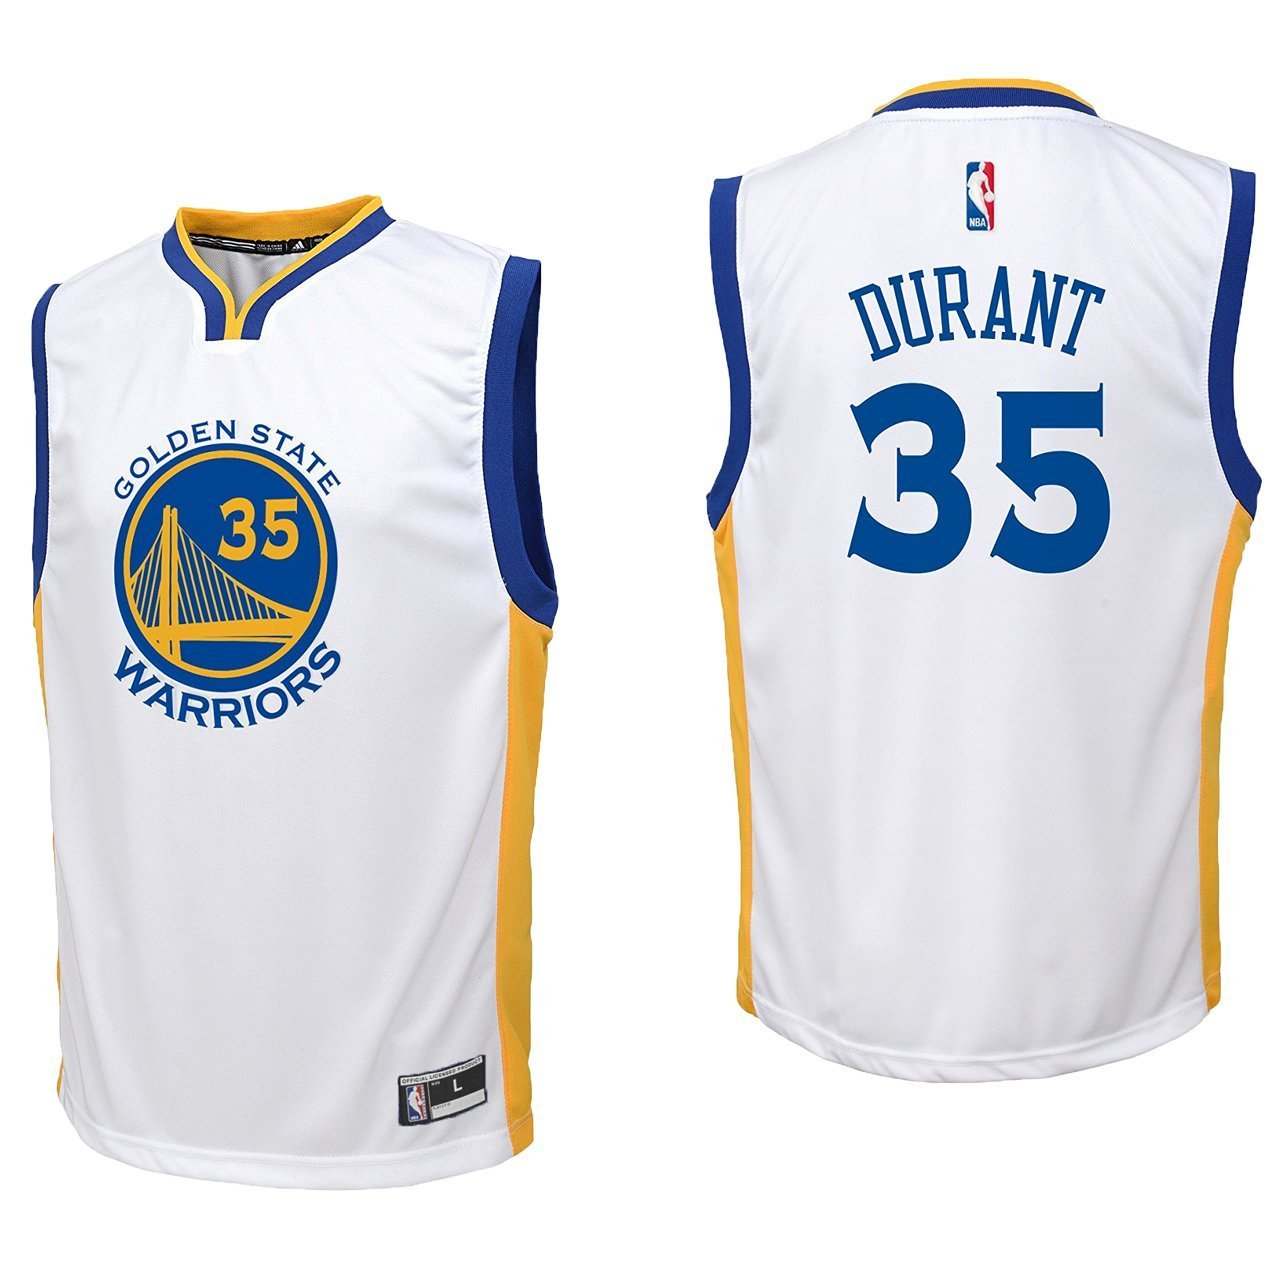 738944f02c7f4 Outerstuff Kevin Durant Golden State Warriors #35 White Youth Home Replica  Jersey